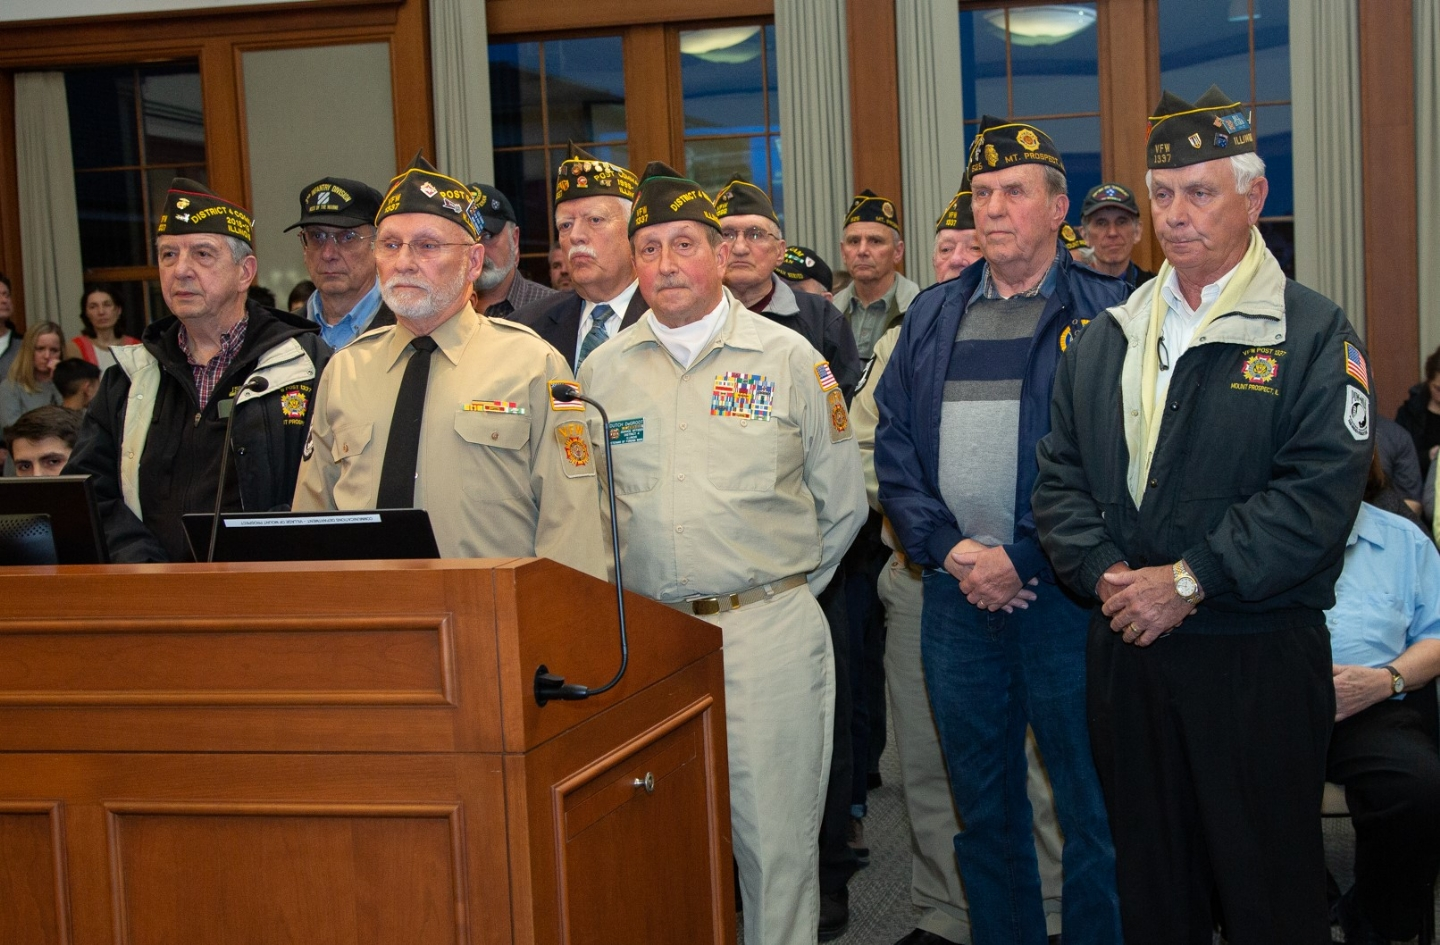 Mt. Prospect Mayor Arlene Jurackek and the village board issued a proclamation thanking VFW Post 1337 and Legion Post 525 for their service to our country. Vets attended a recognition ceremony at Mt Prospect VIllage Hall, March 19th.